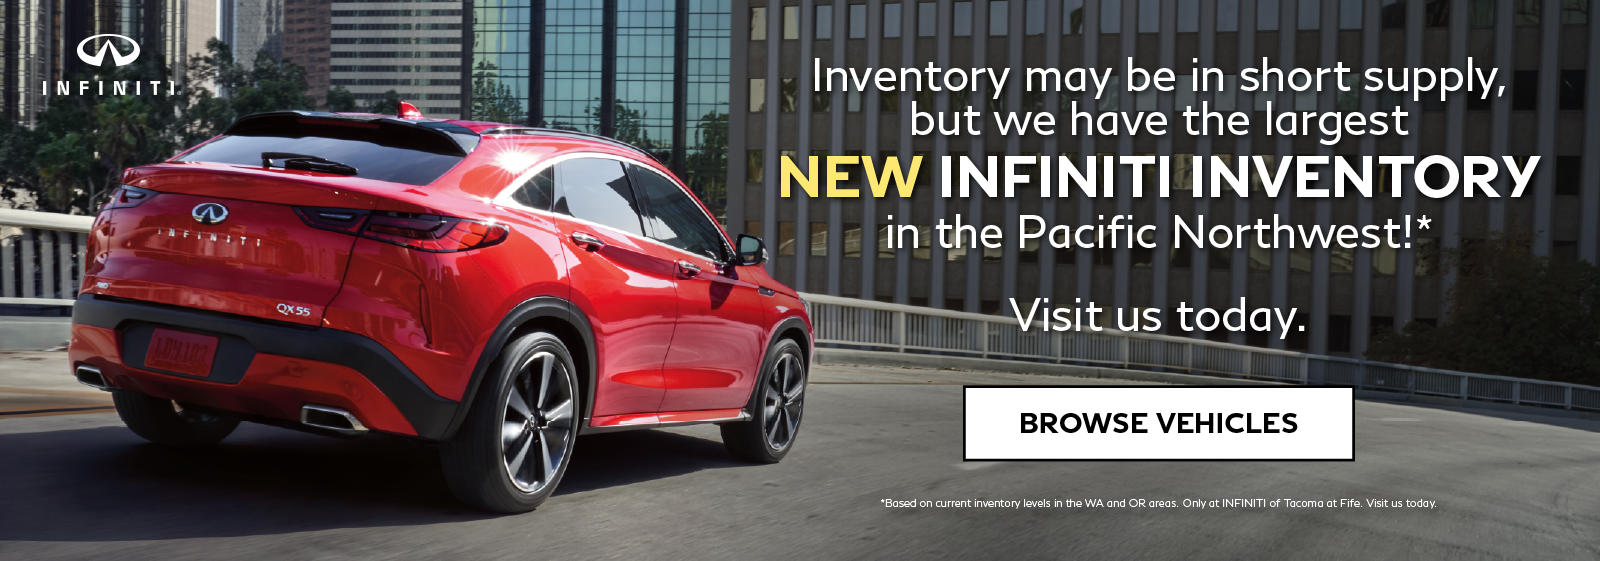 INFINITI of Tacoma has the largest new INFINITI inventory in the Pacific Northwest! Click to browse inventory.